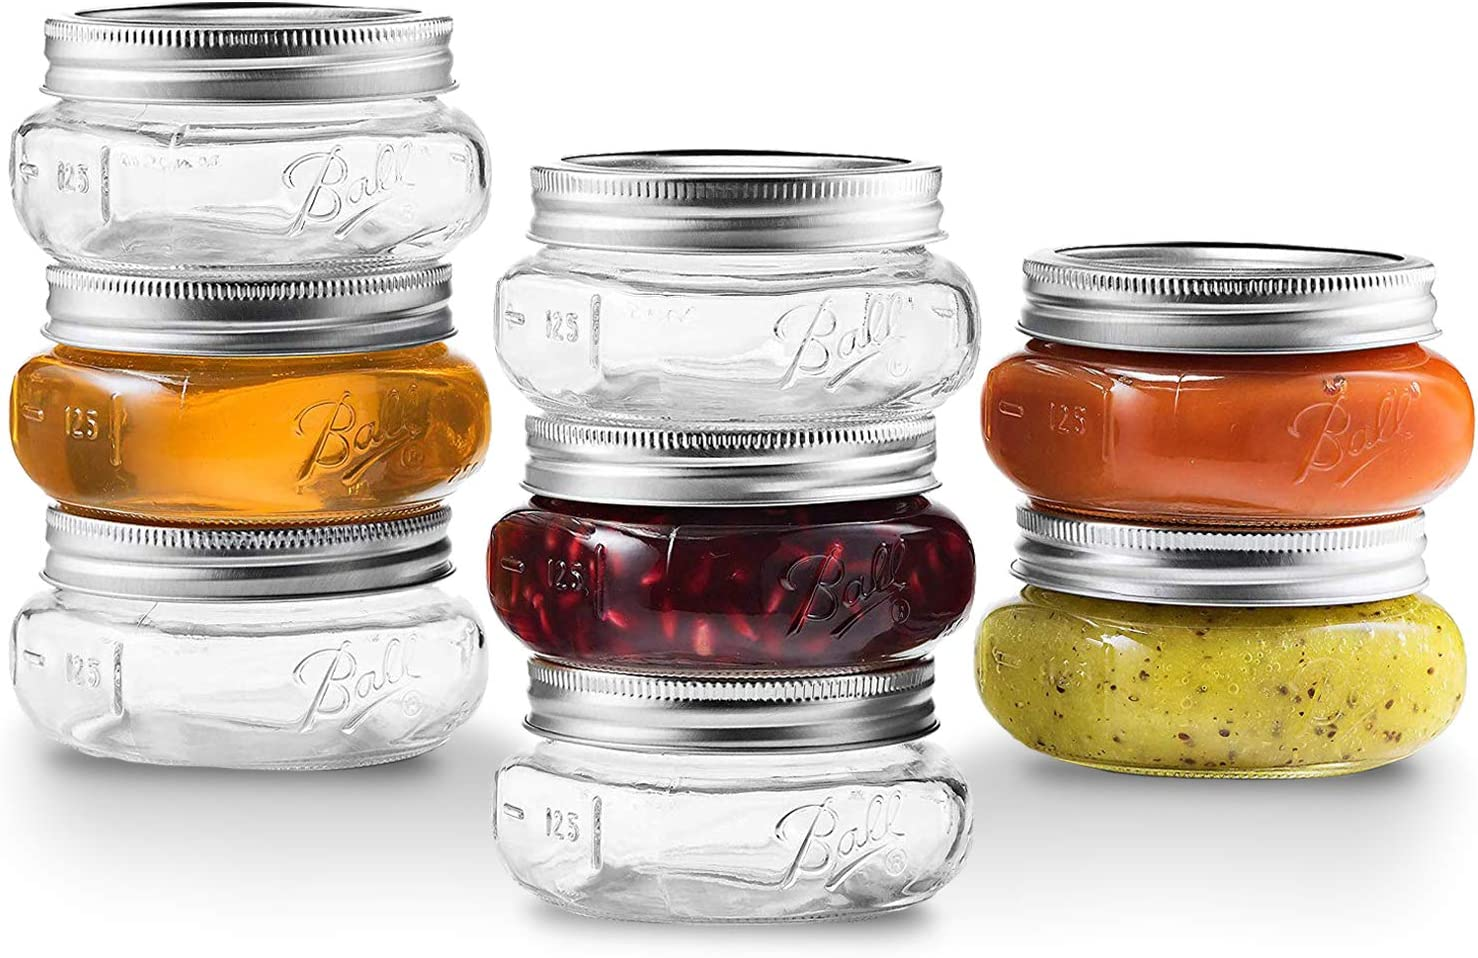 Ball Wide Mouth Mason Jars 8 oz [8 Pack] With Airtight lids and Bands - For Canning, Pickling And Preserving, Jams, Sauces - Wide Mouth Jars Freezer, Microwave And Dishwasher Safe + SEWANTA Jar Opener